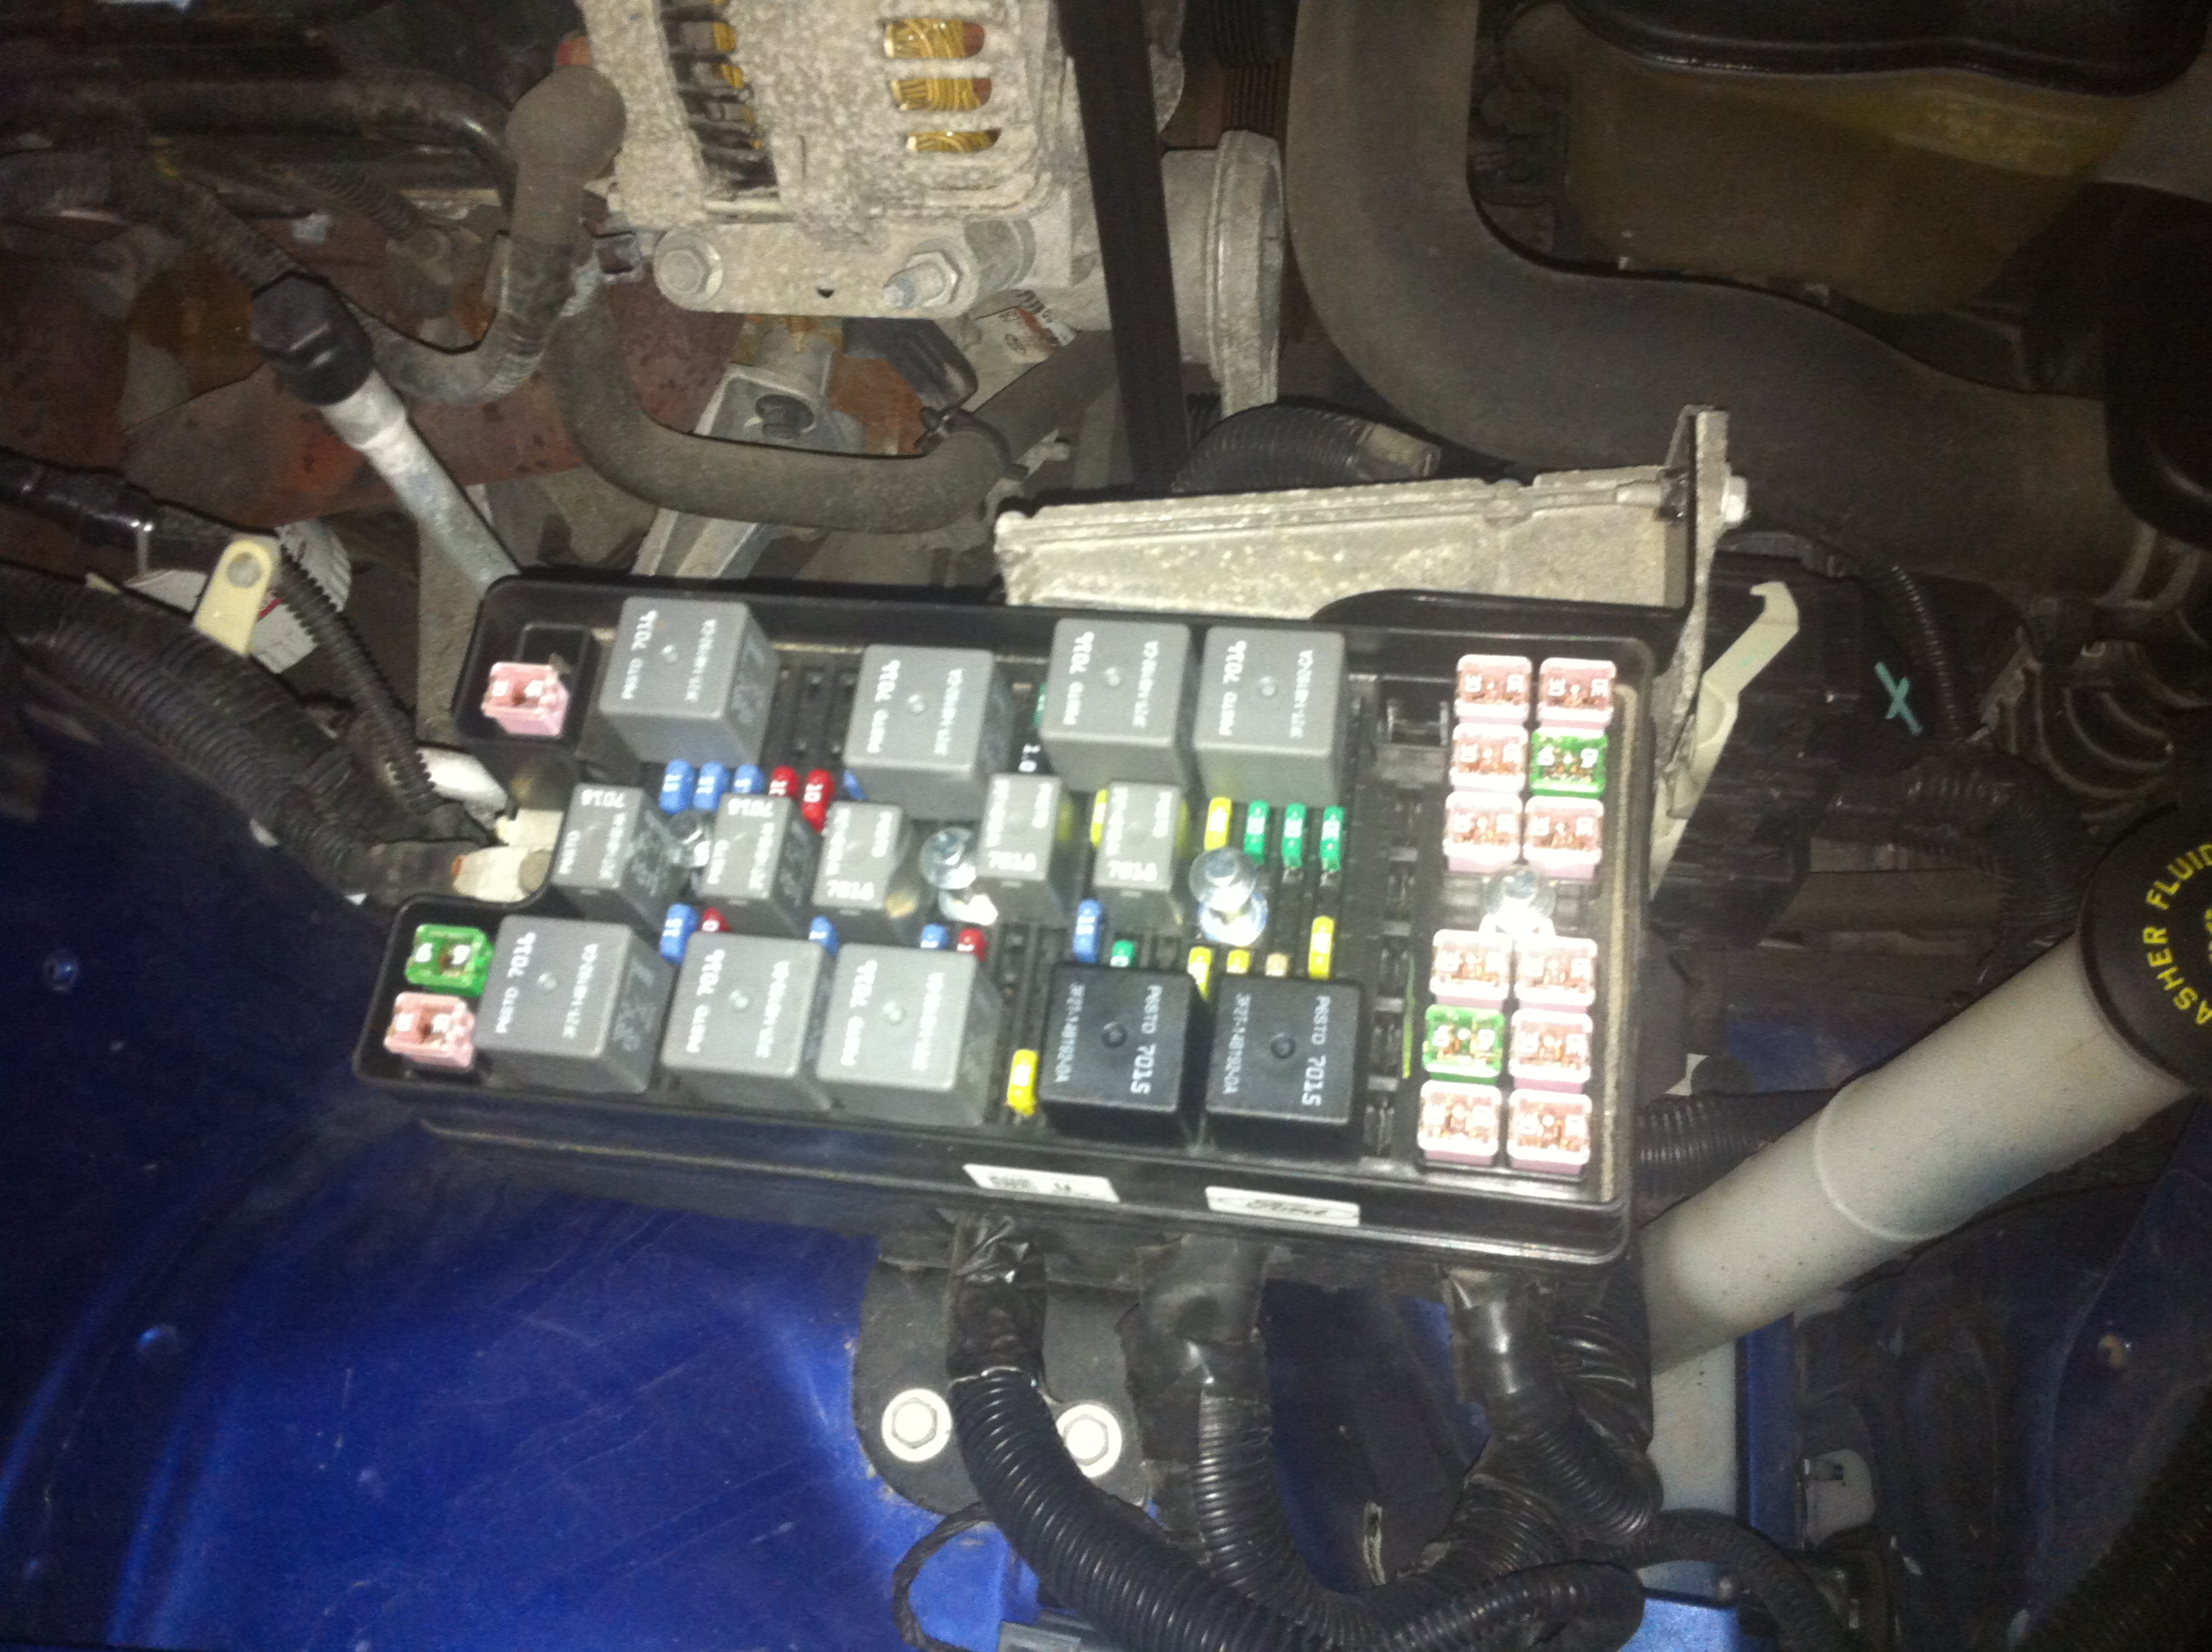 2011 Ford Mustang Fuse Box Diagram Car Instructions 187 How To Unlock My Trunk On My 2007 Ford